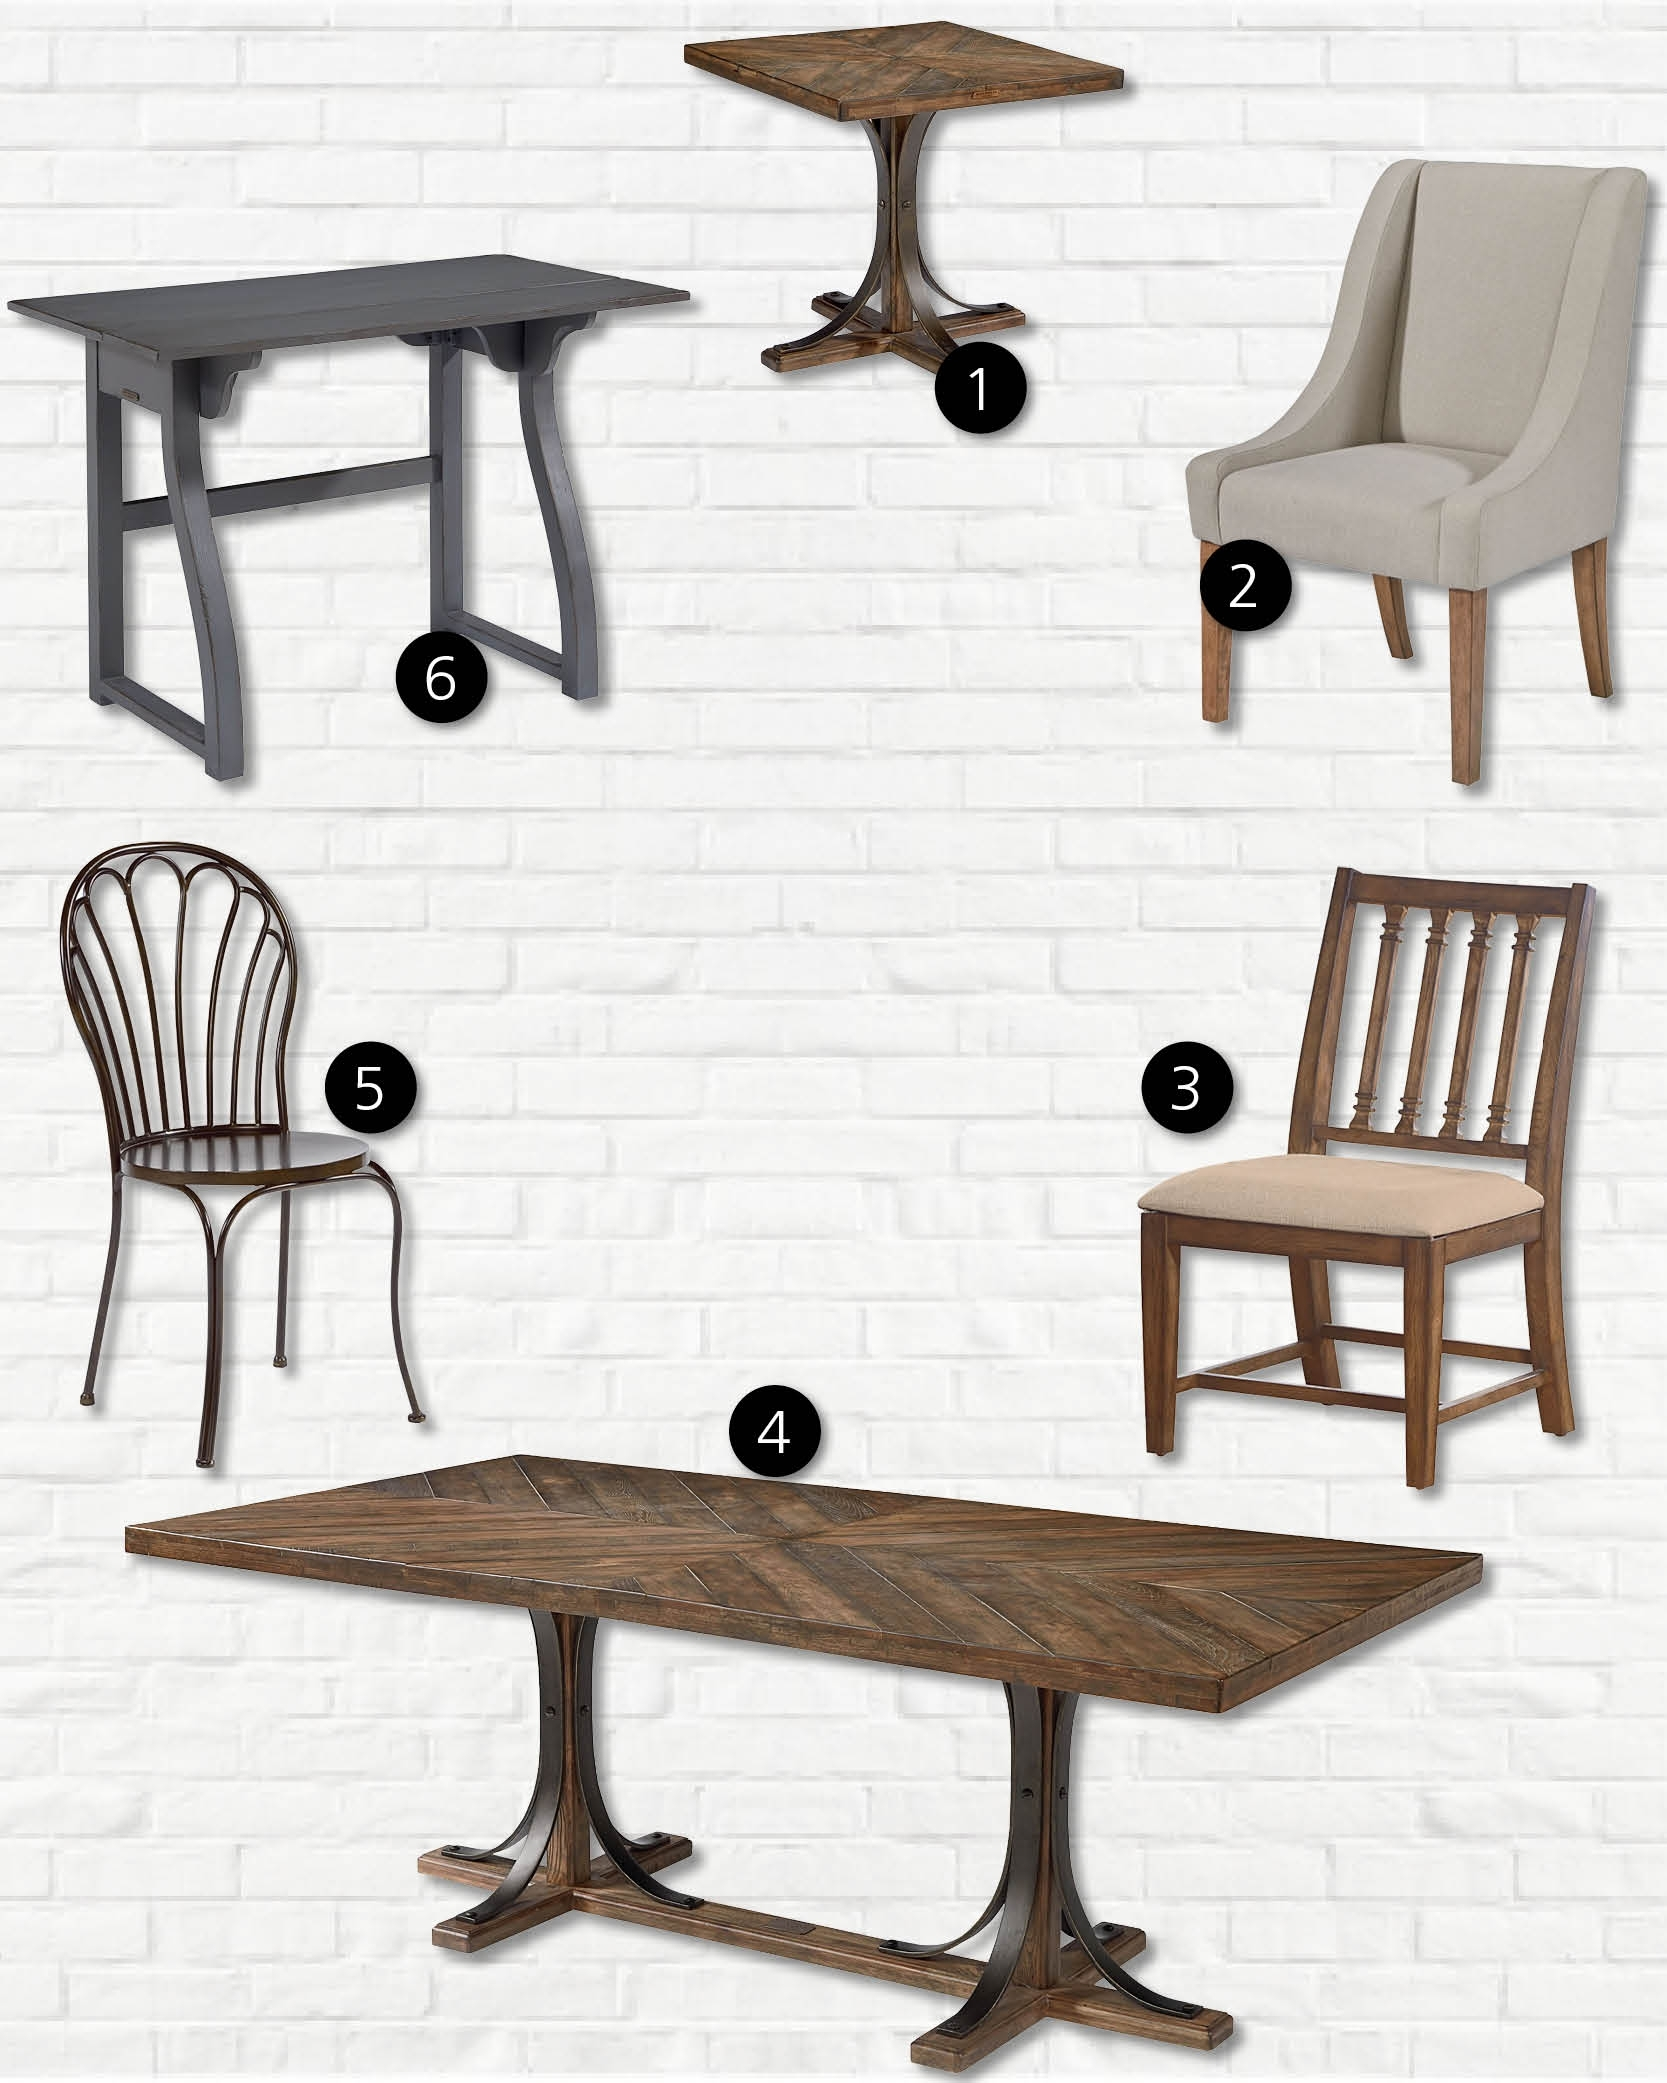 Celebrity Look For Less: Magnolia Homejoanna Gaines | Hm Etc. Throughout Newest Magnolia Home Shop Floor Dining Tables With Iron Trestle (Photo 9 of 20)